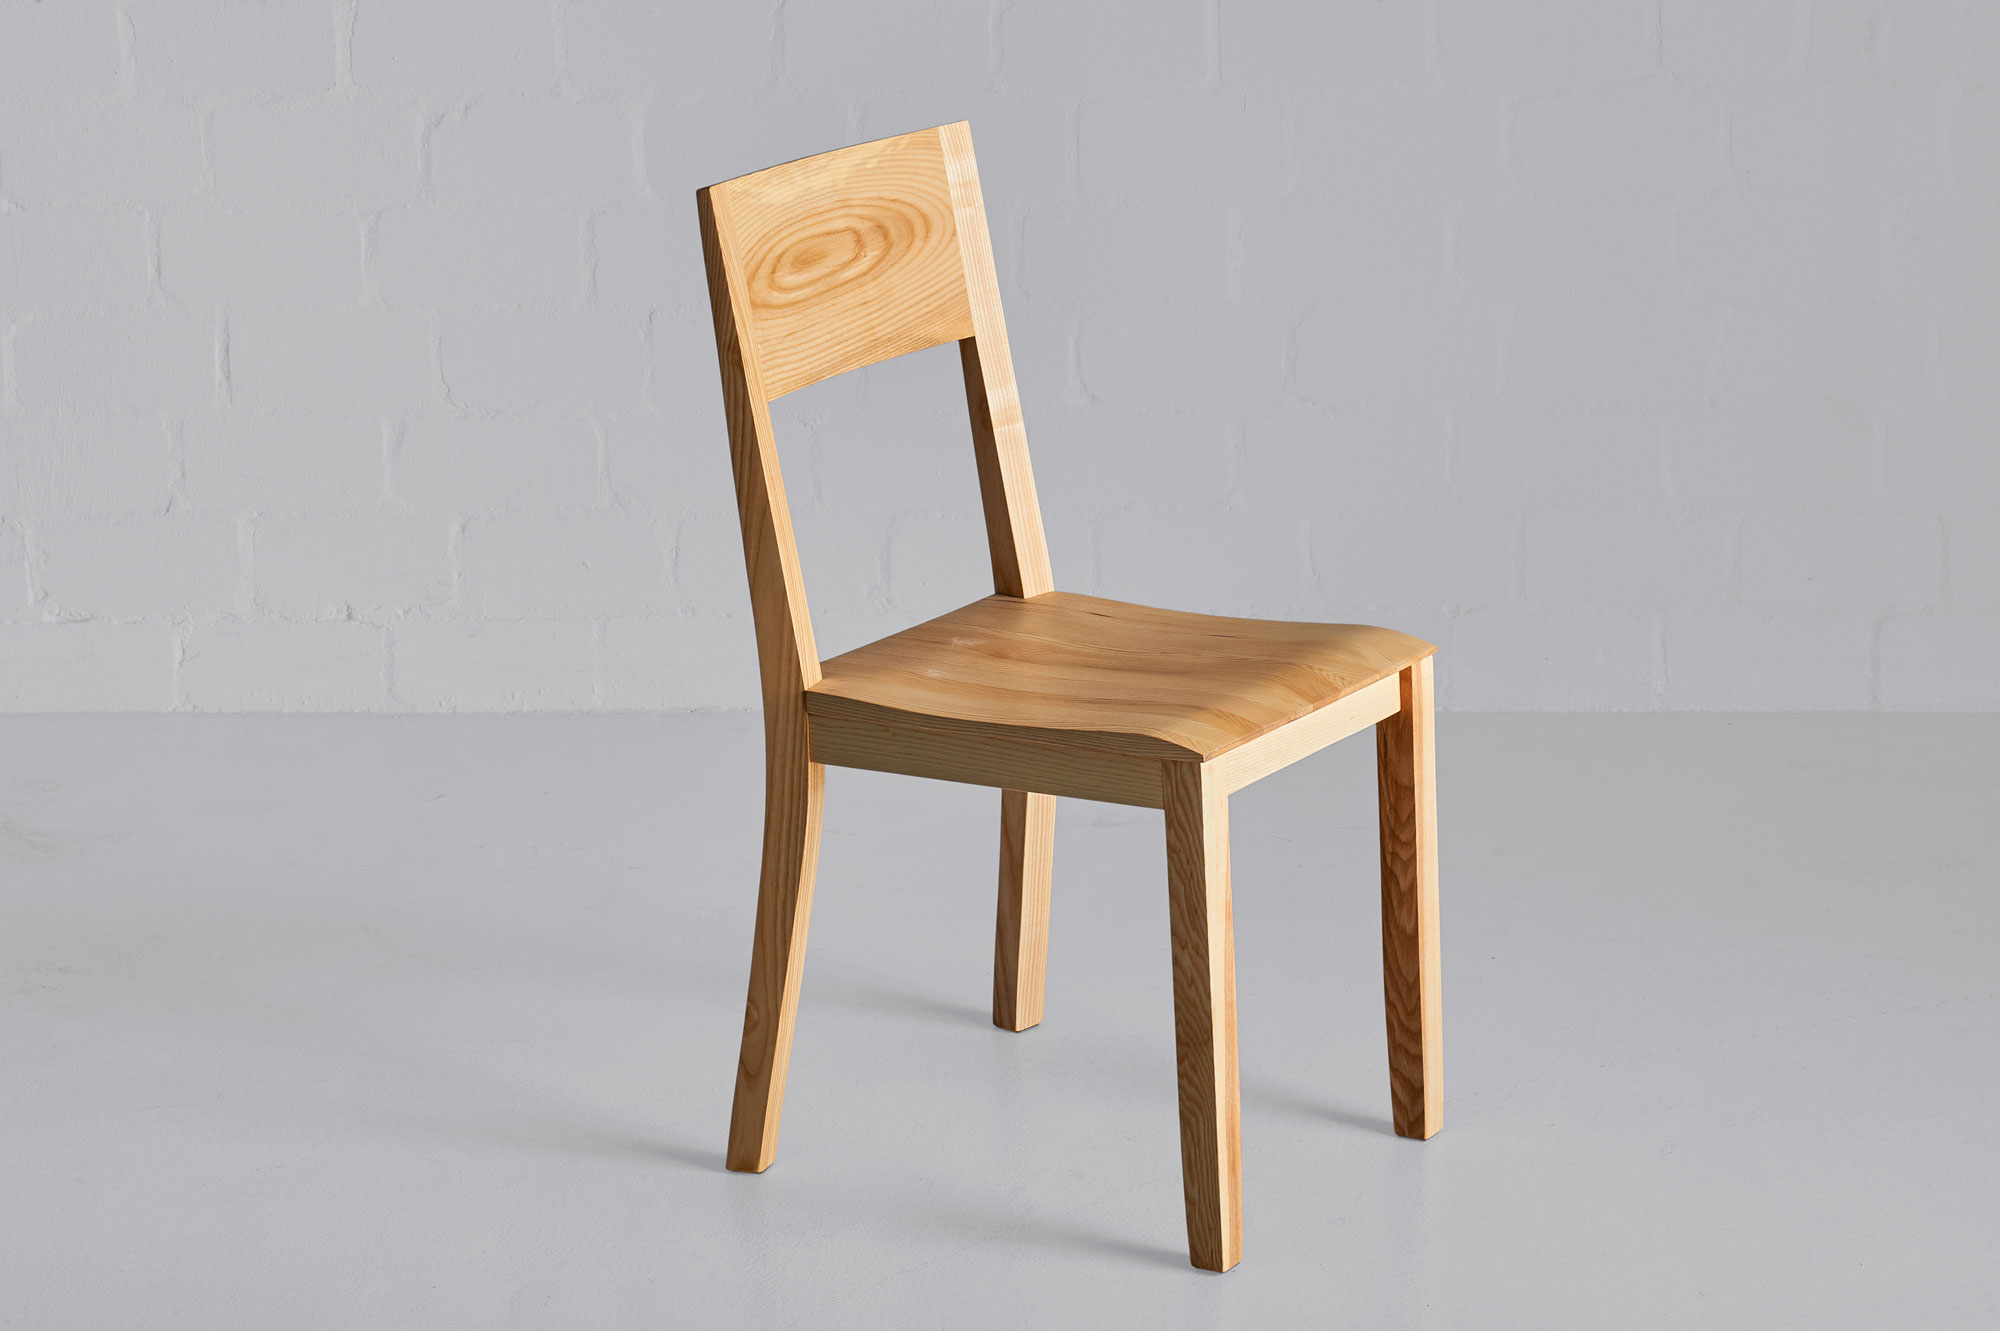 Dining Room Wooden Chair NOMI Nomi4561 custom made in solid wood by vitamin design